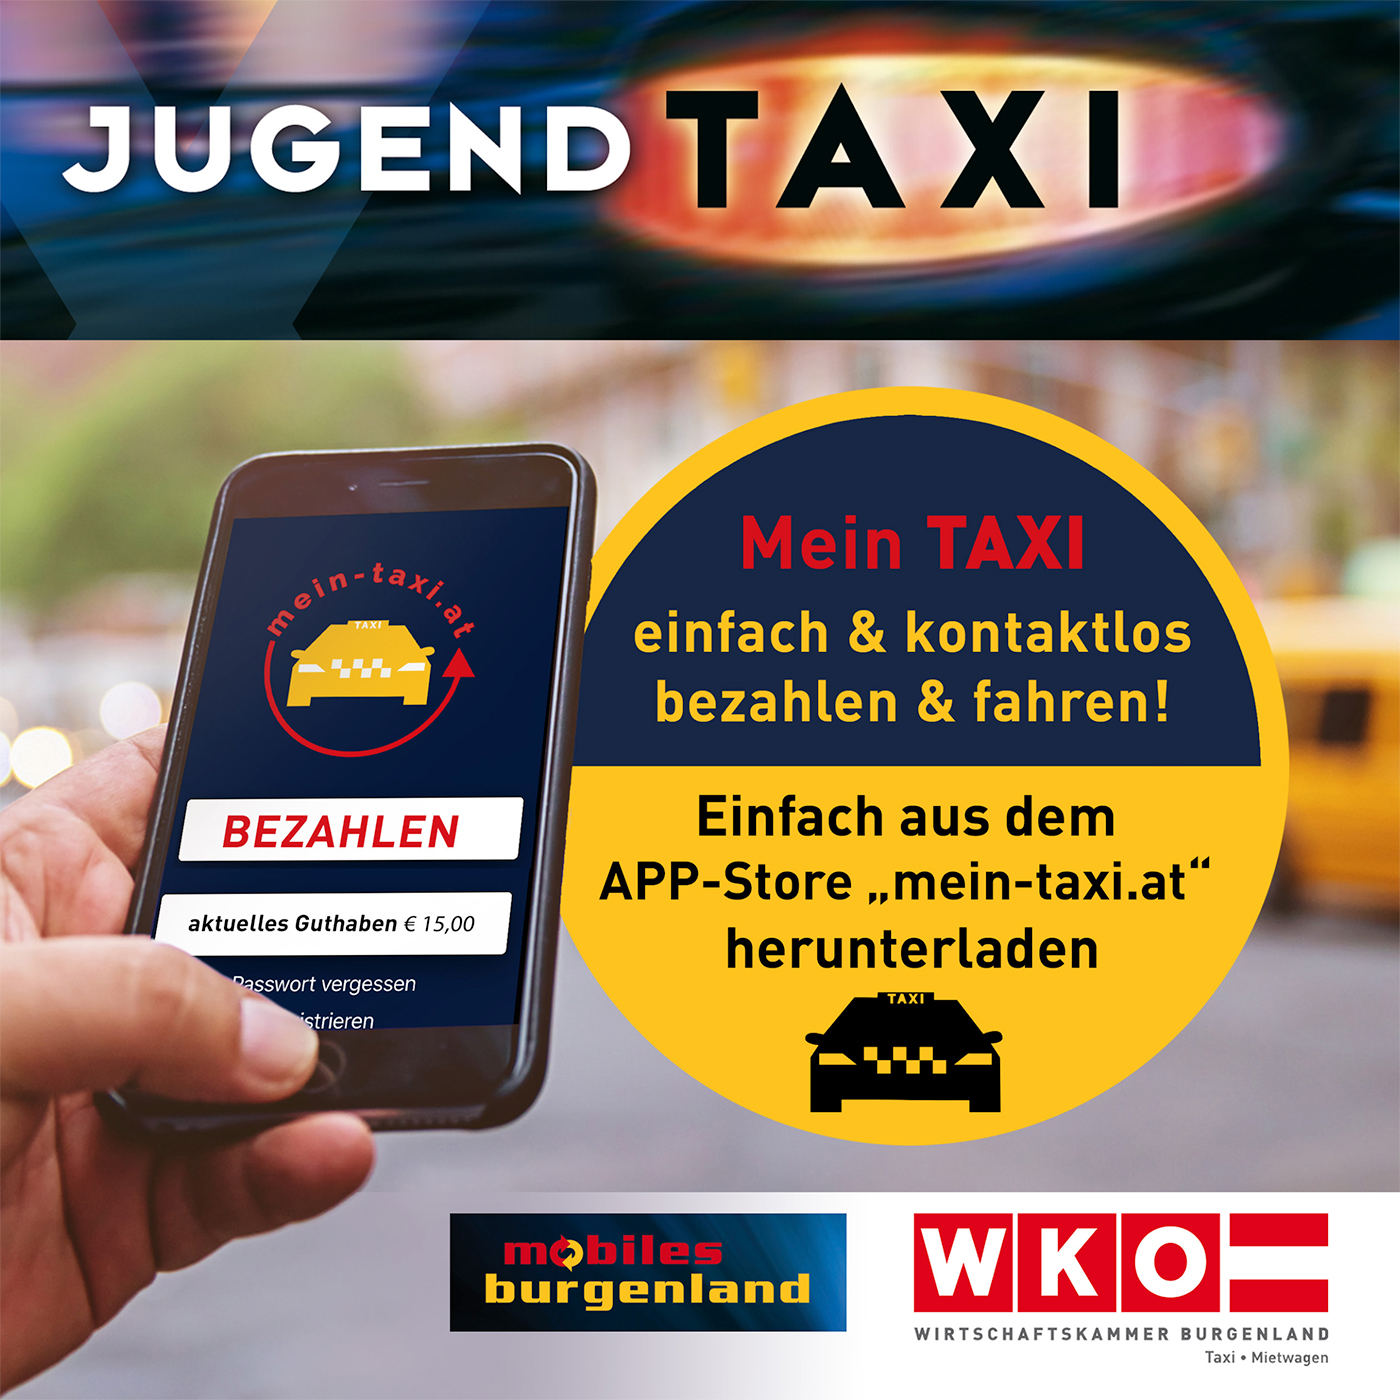 You are currently viewing Das Jugendtaxi jetzt als App